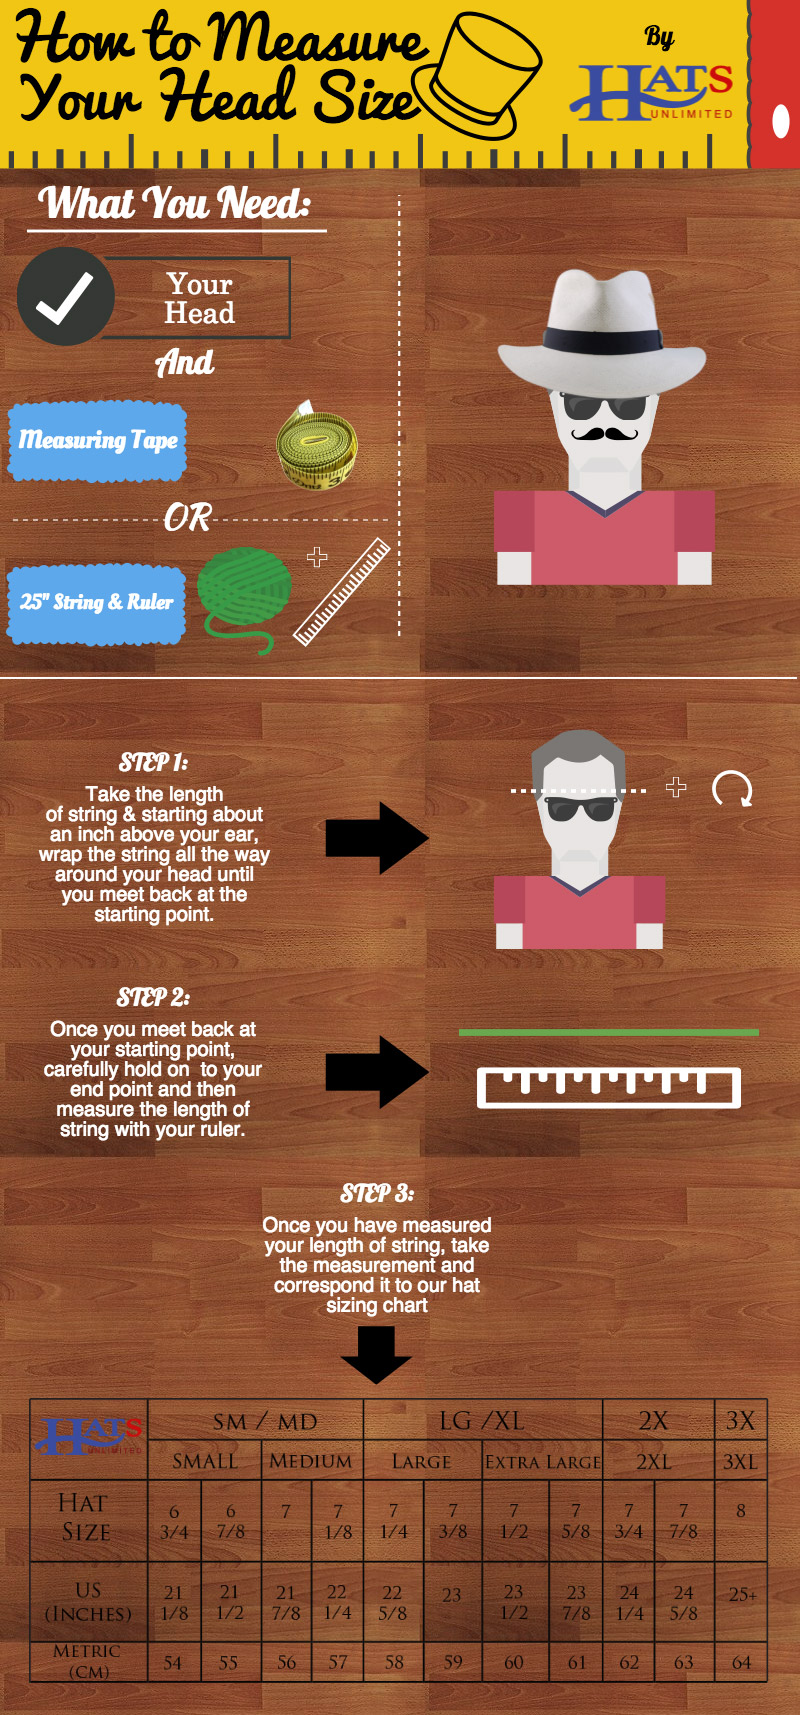 how to measure you head size infographic